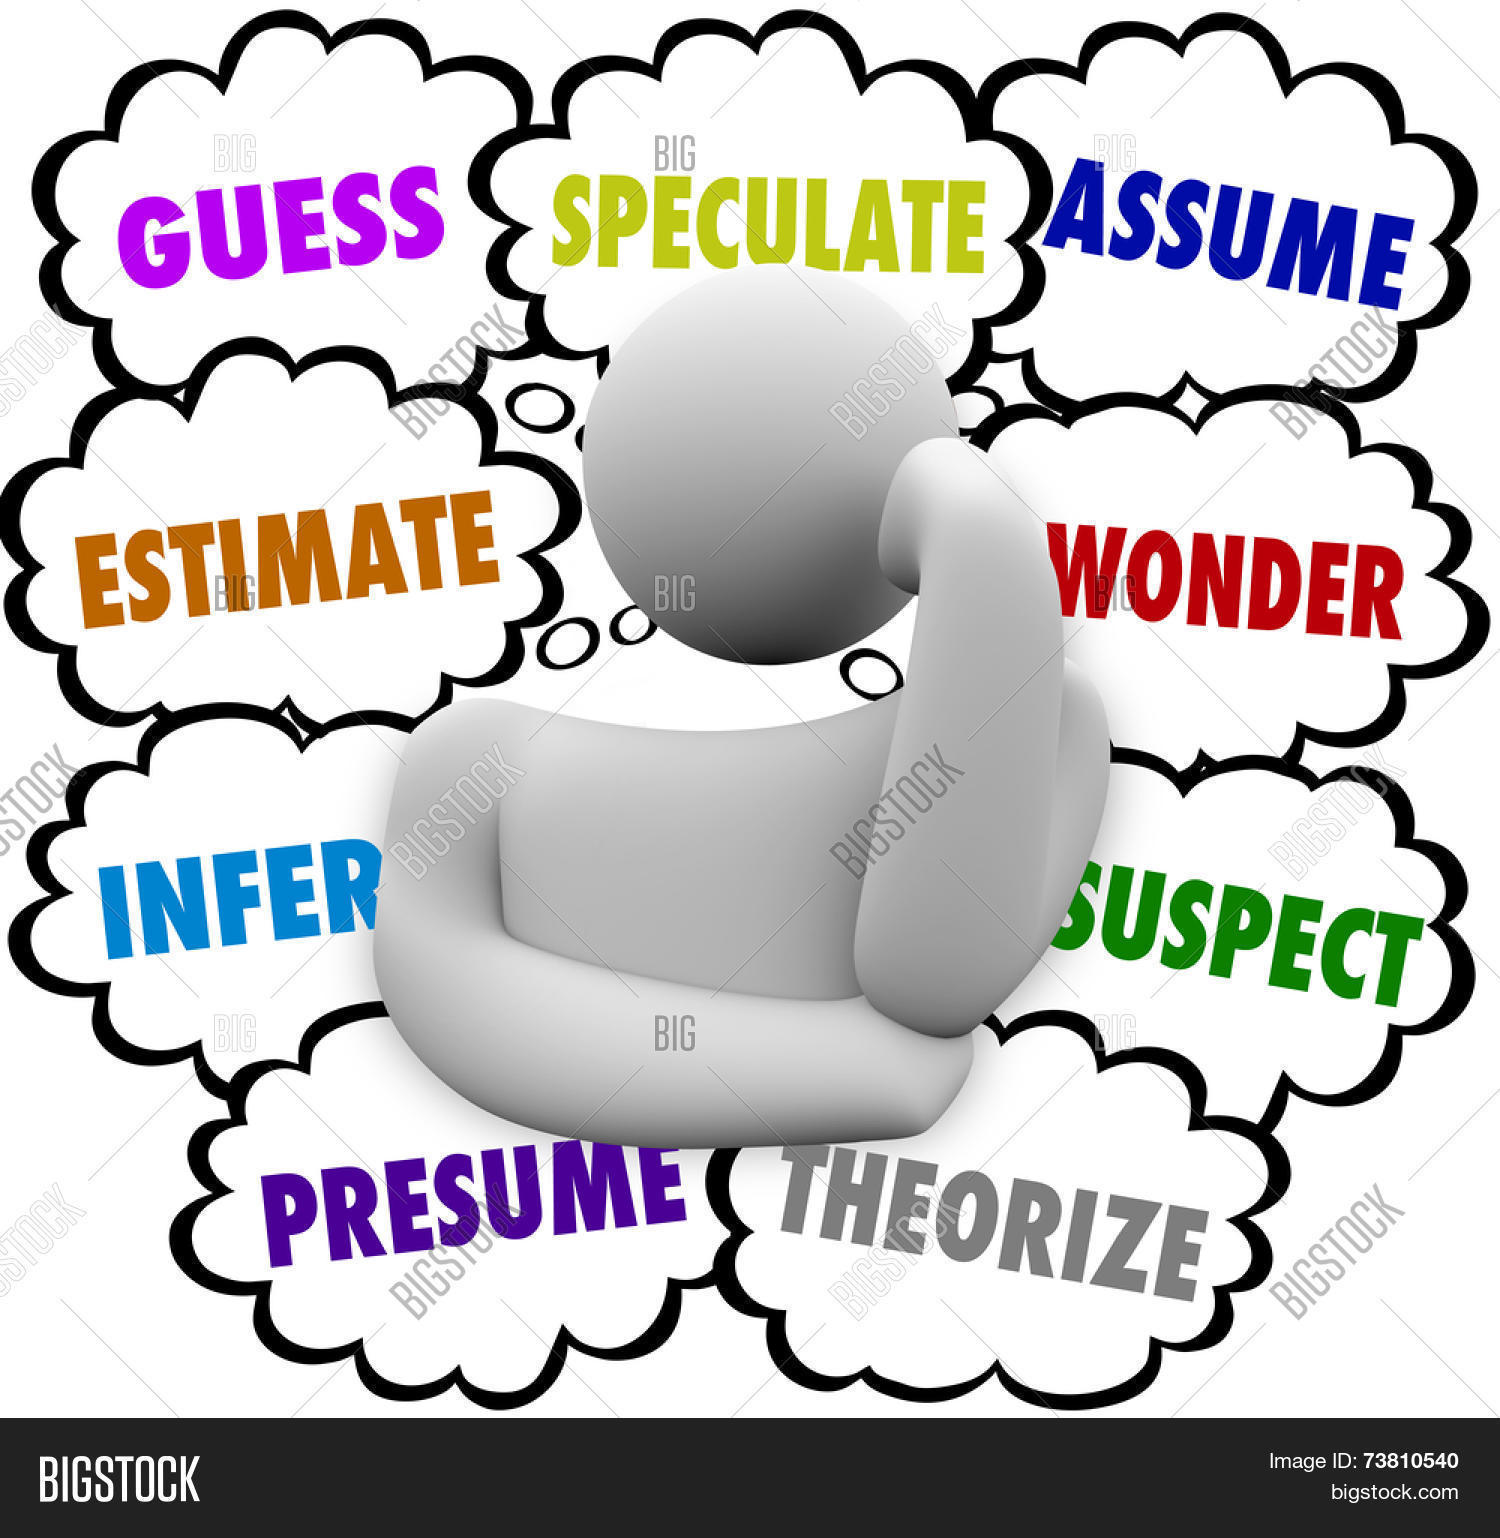 guess related words image photo free trial bigstock